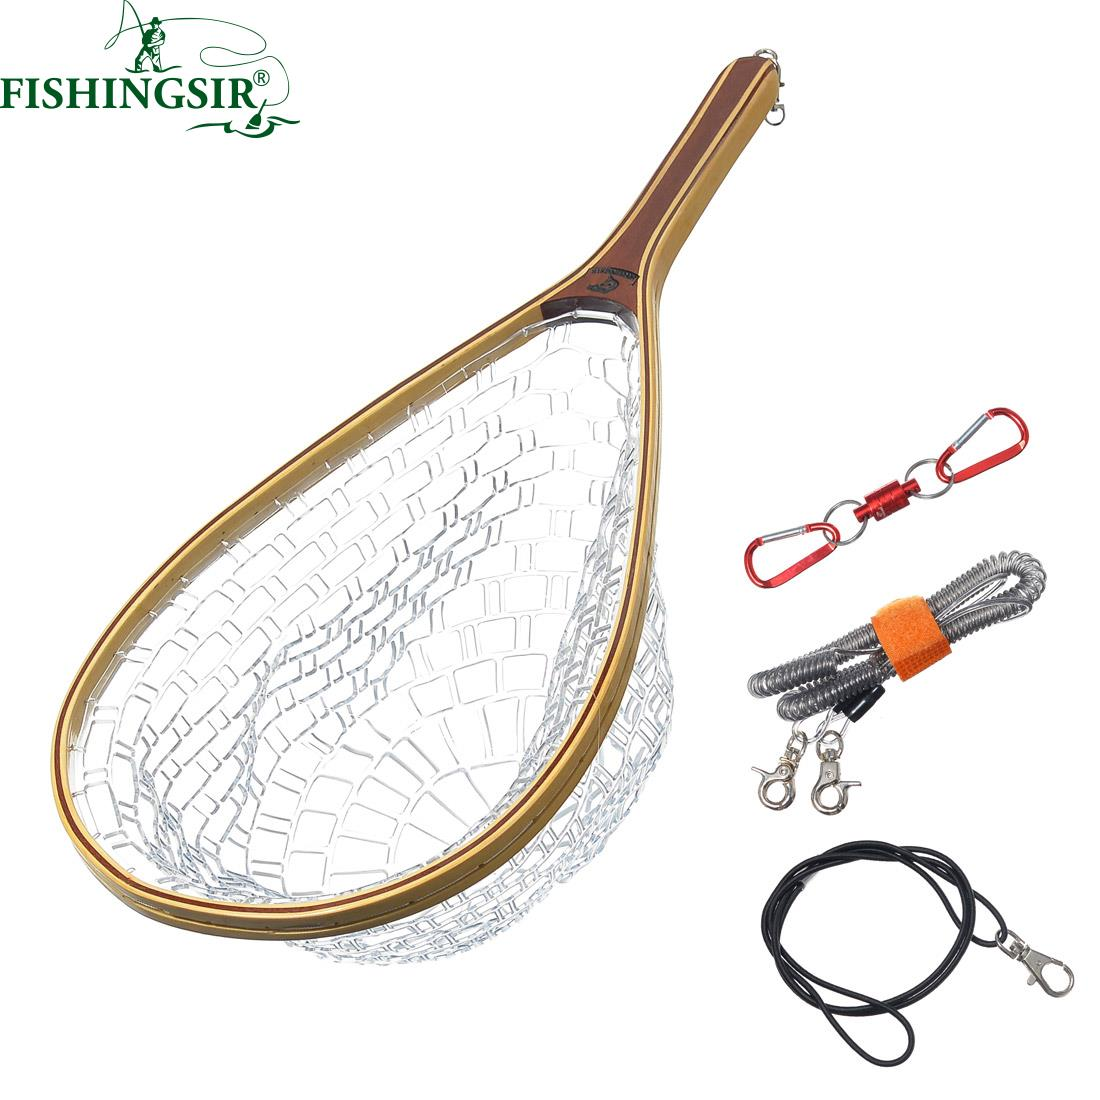 FishingSir Fly Fishing Net Mesh Soft Rubber Landing Net Magnetic Release Holder Basket Pesca Combo Kit Trout Ice FishingTools